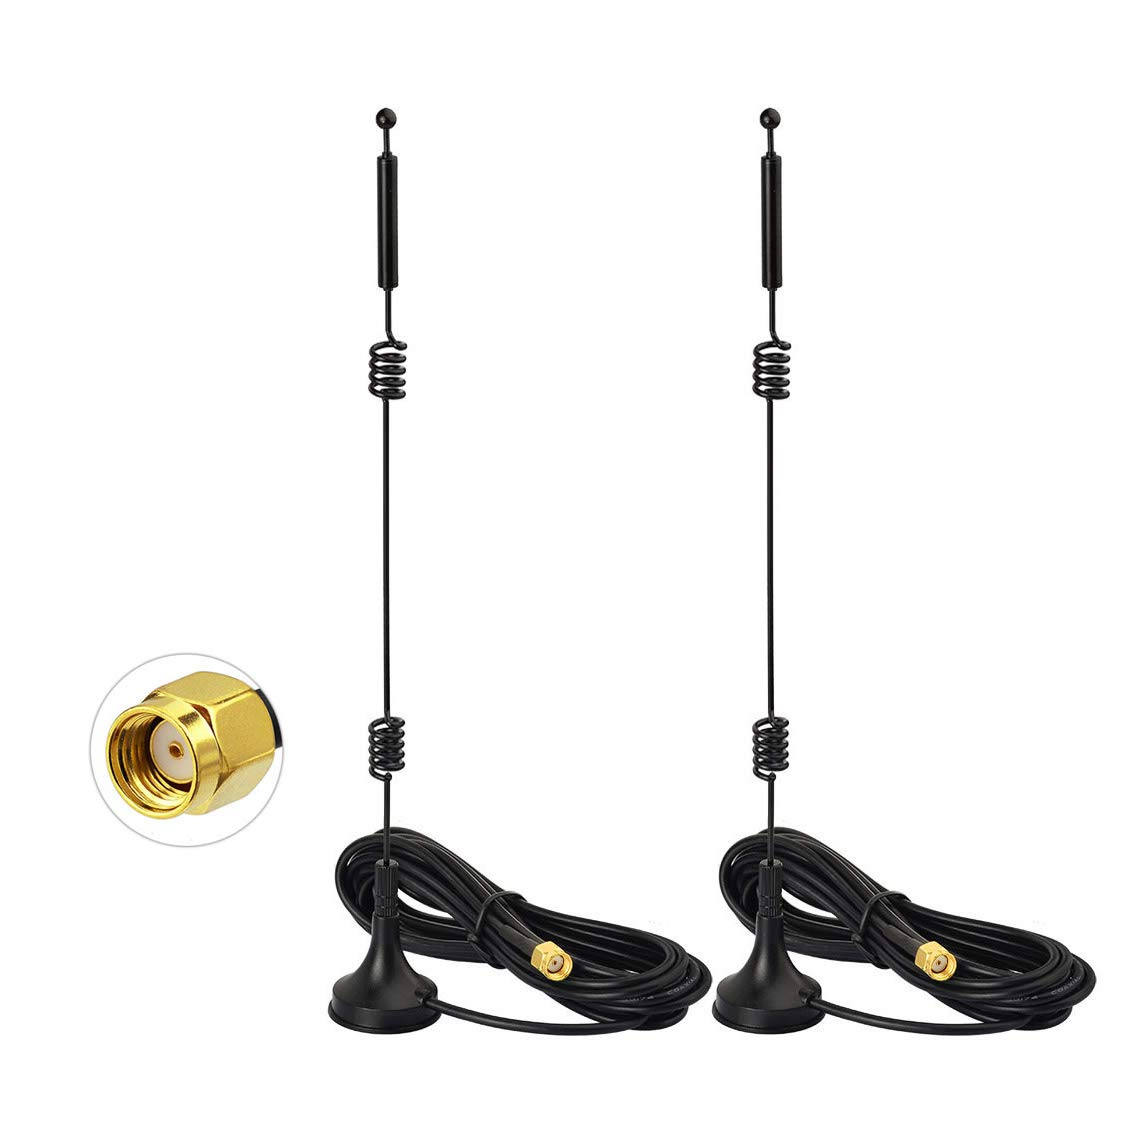 Bingfu Dual Band WiFi 2.4GHz 5GHz 5.8GHz 9dBi Magnetic Base MIMO RP-SMA Male Antenna (2-Pack) for WiFi Wireless Router Booster Range Extender Gateway Mini PCI Express PCIE Network Card USB Adapter by Bingfu